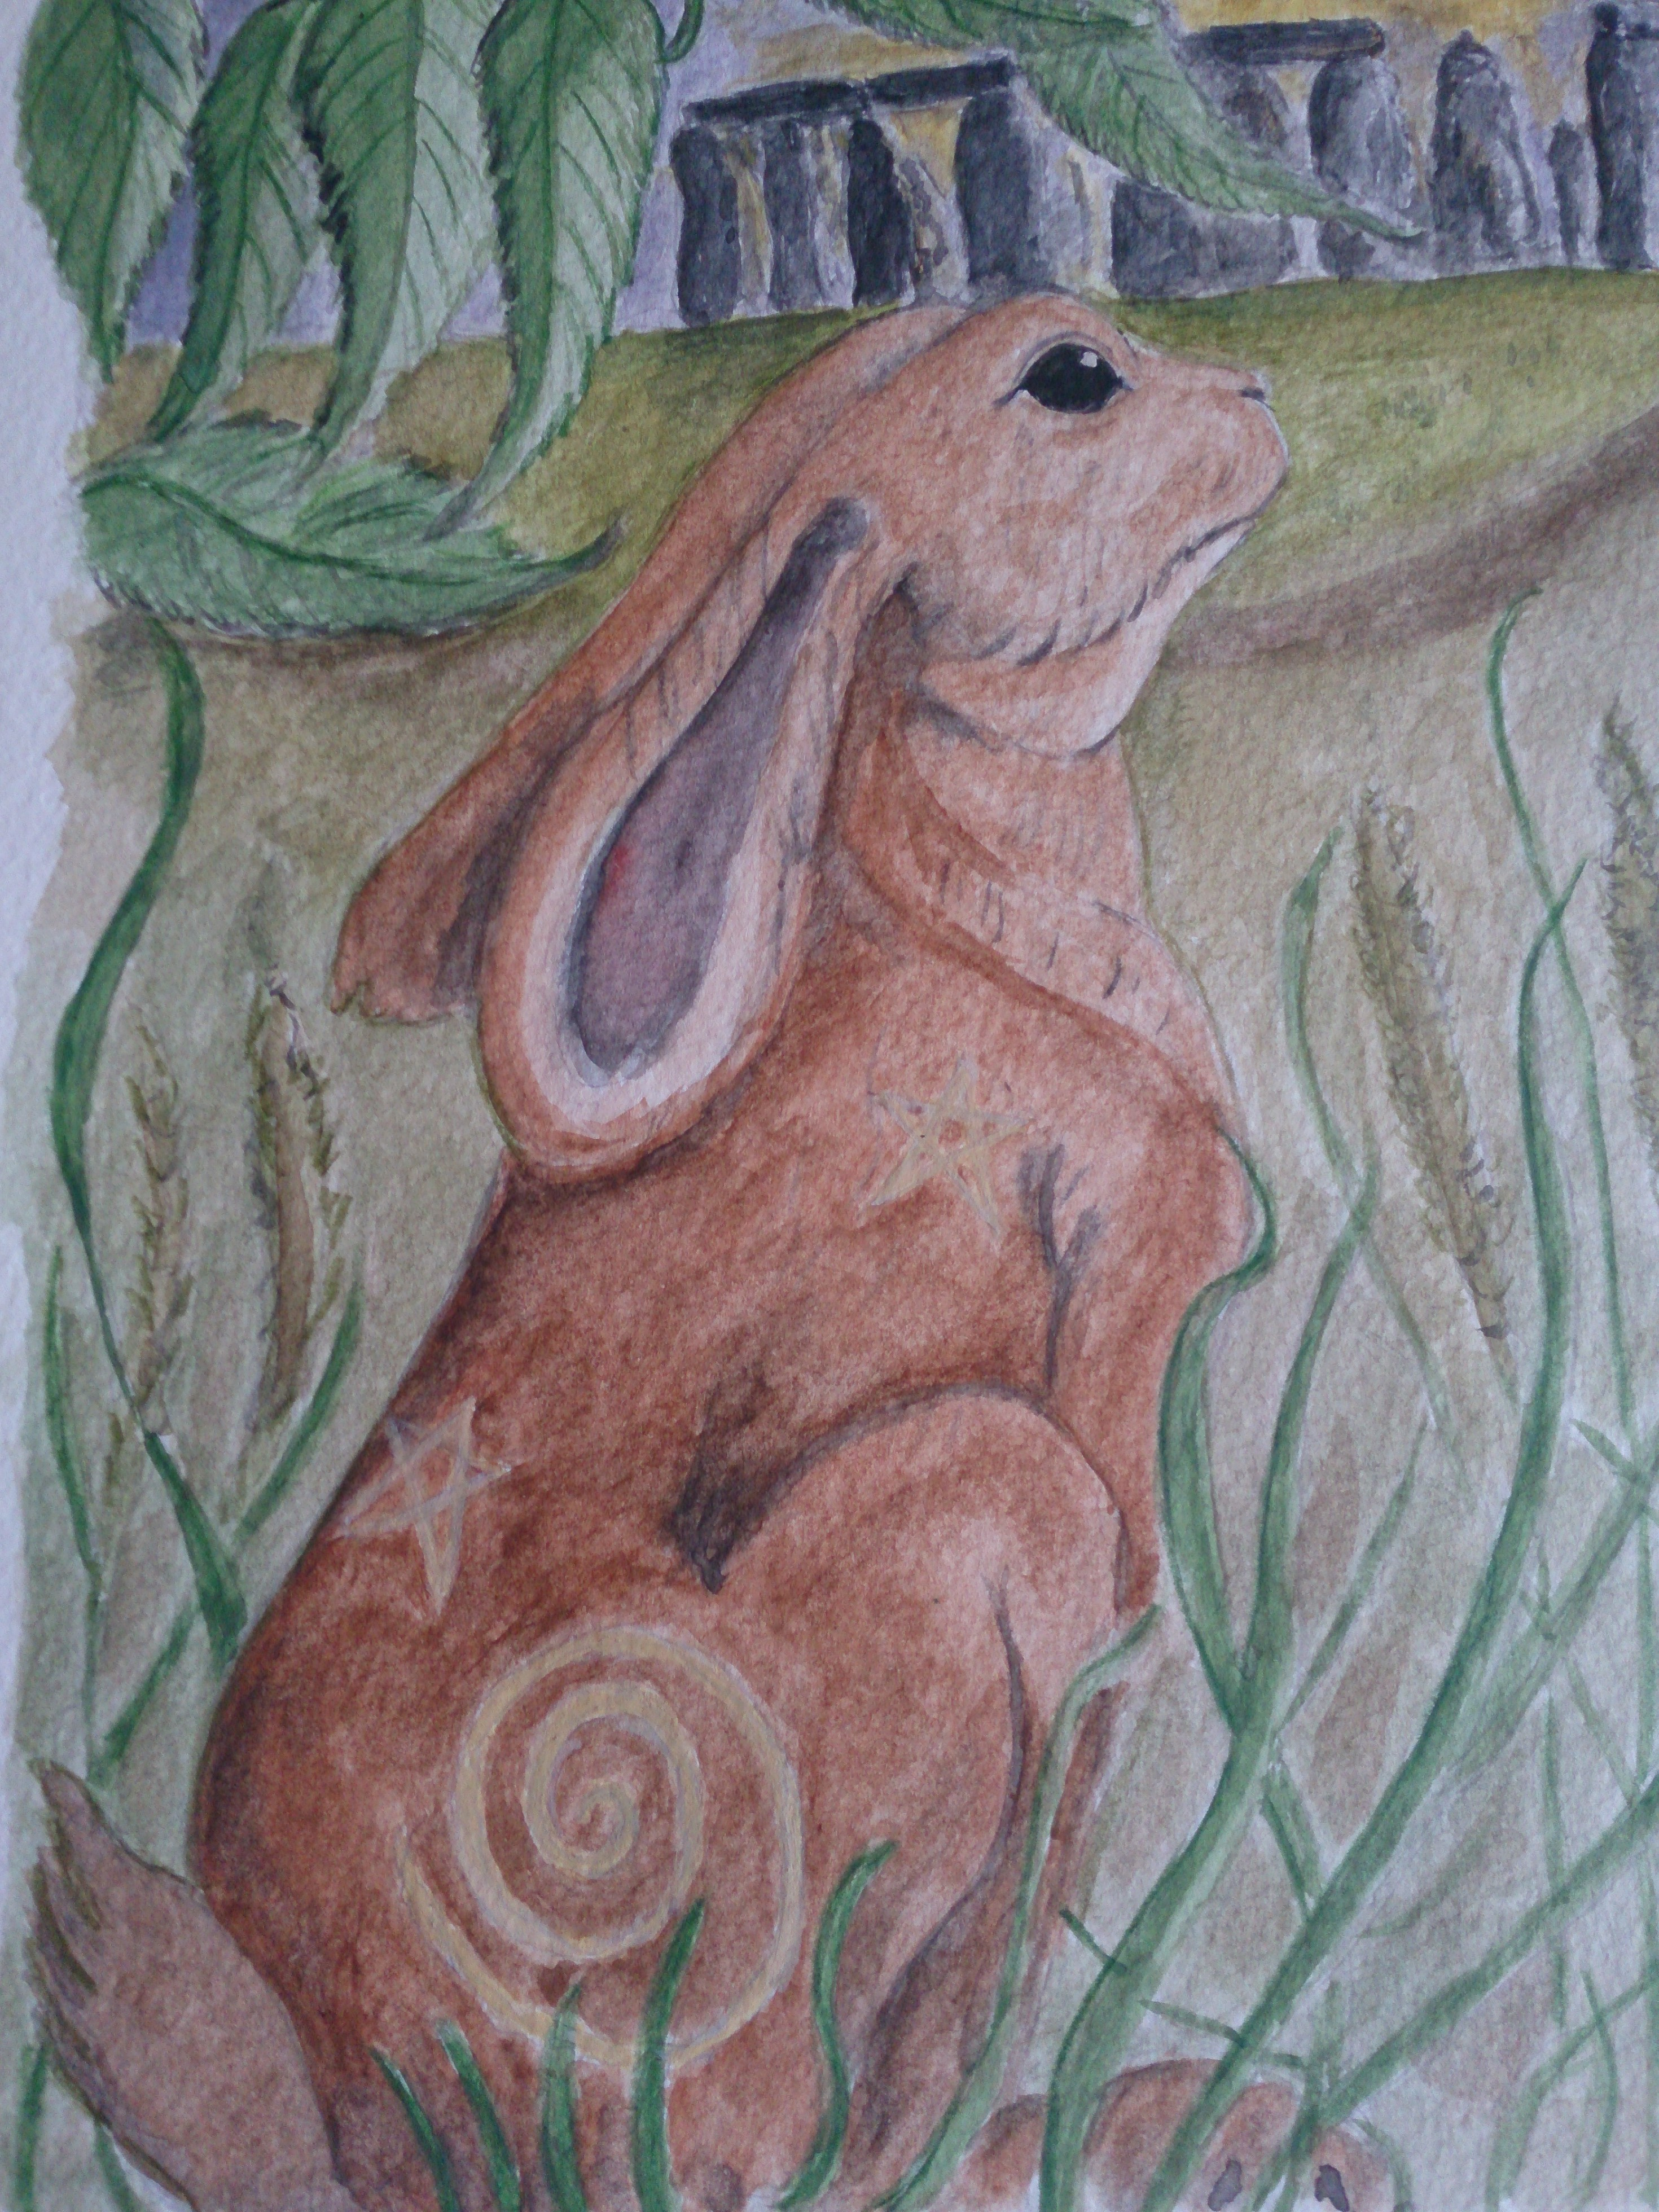 Star gazey hare summer soltice Stone